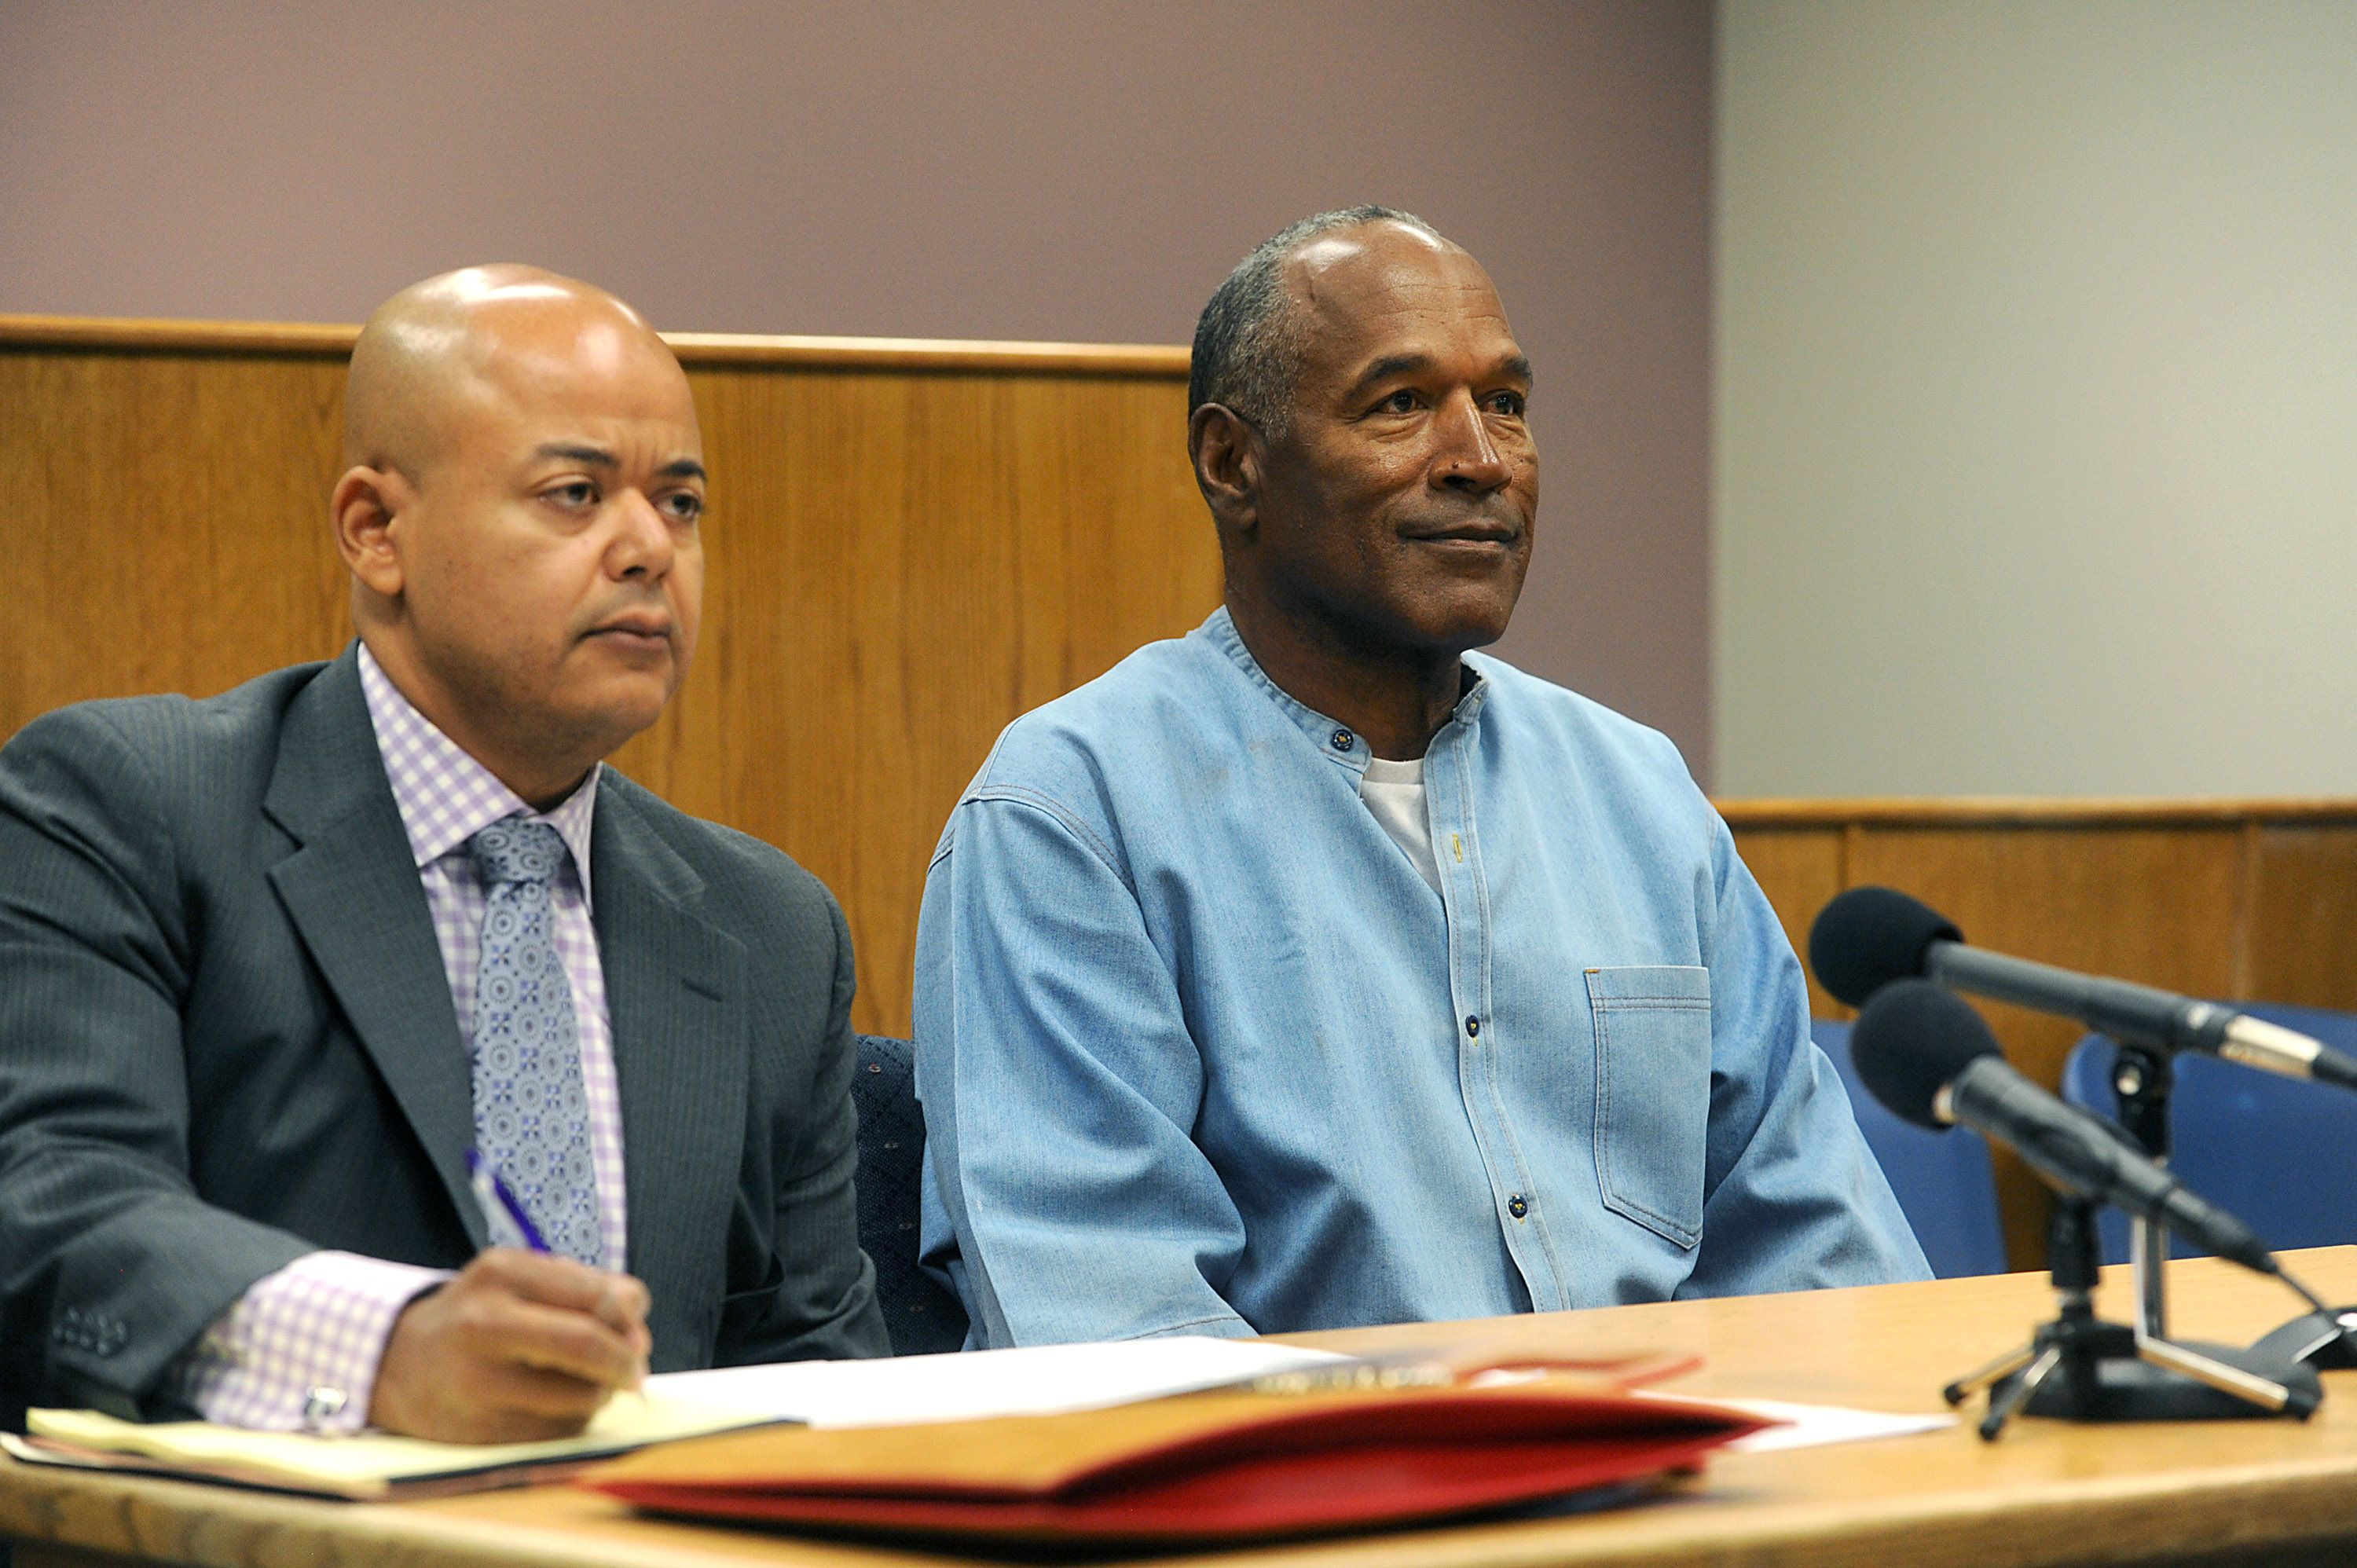 Pool via Getty Images O.J. Simpson sits with his lawyer during his parole hearing on Thursday